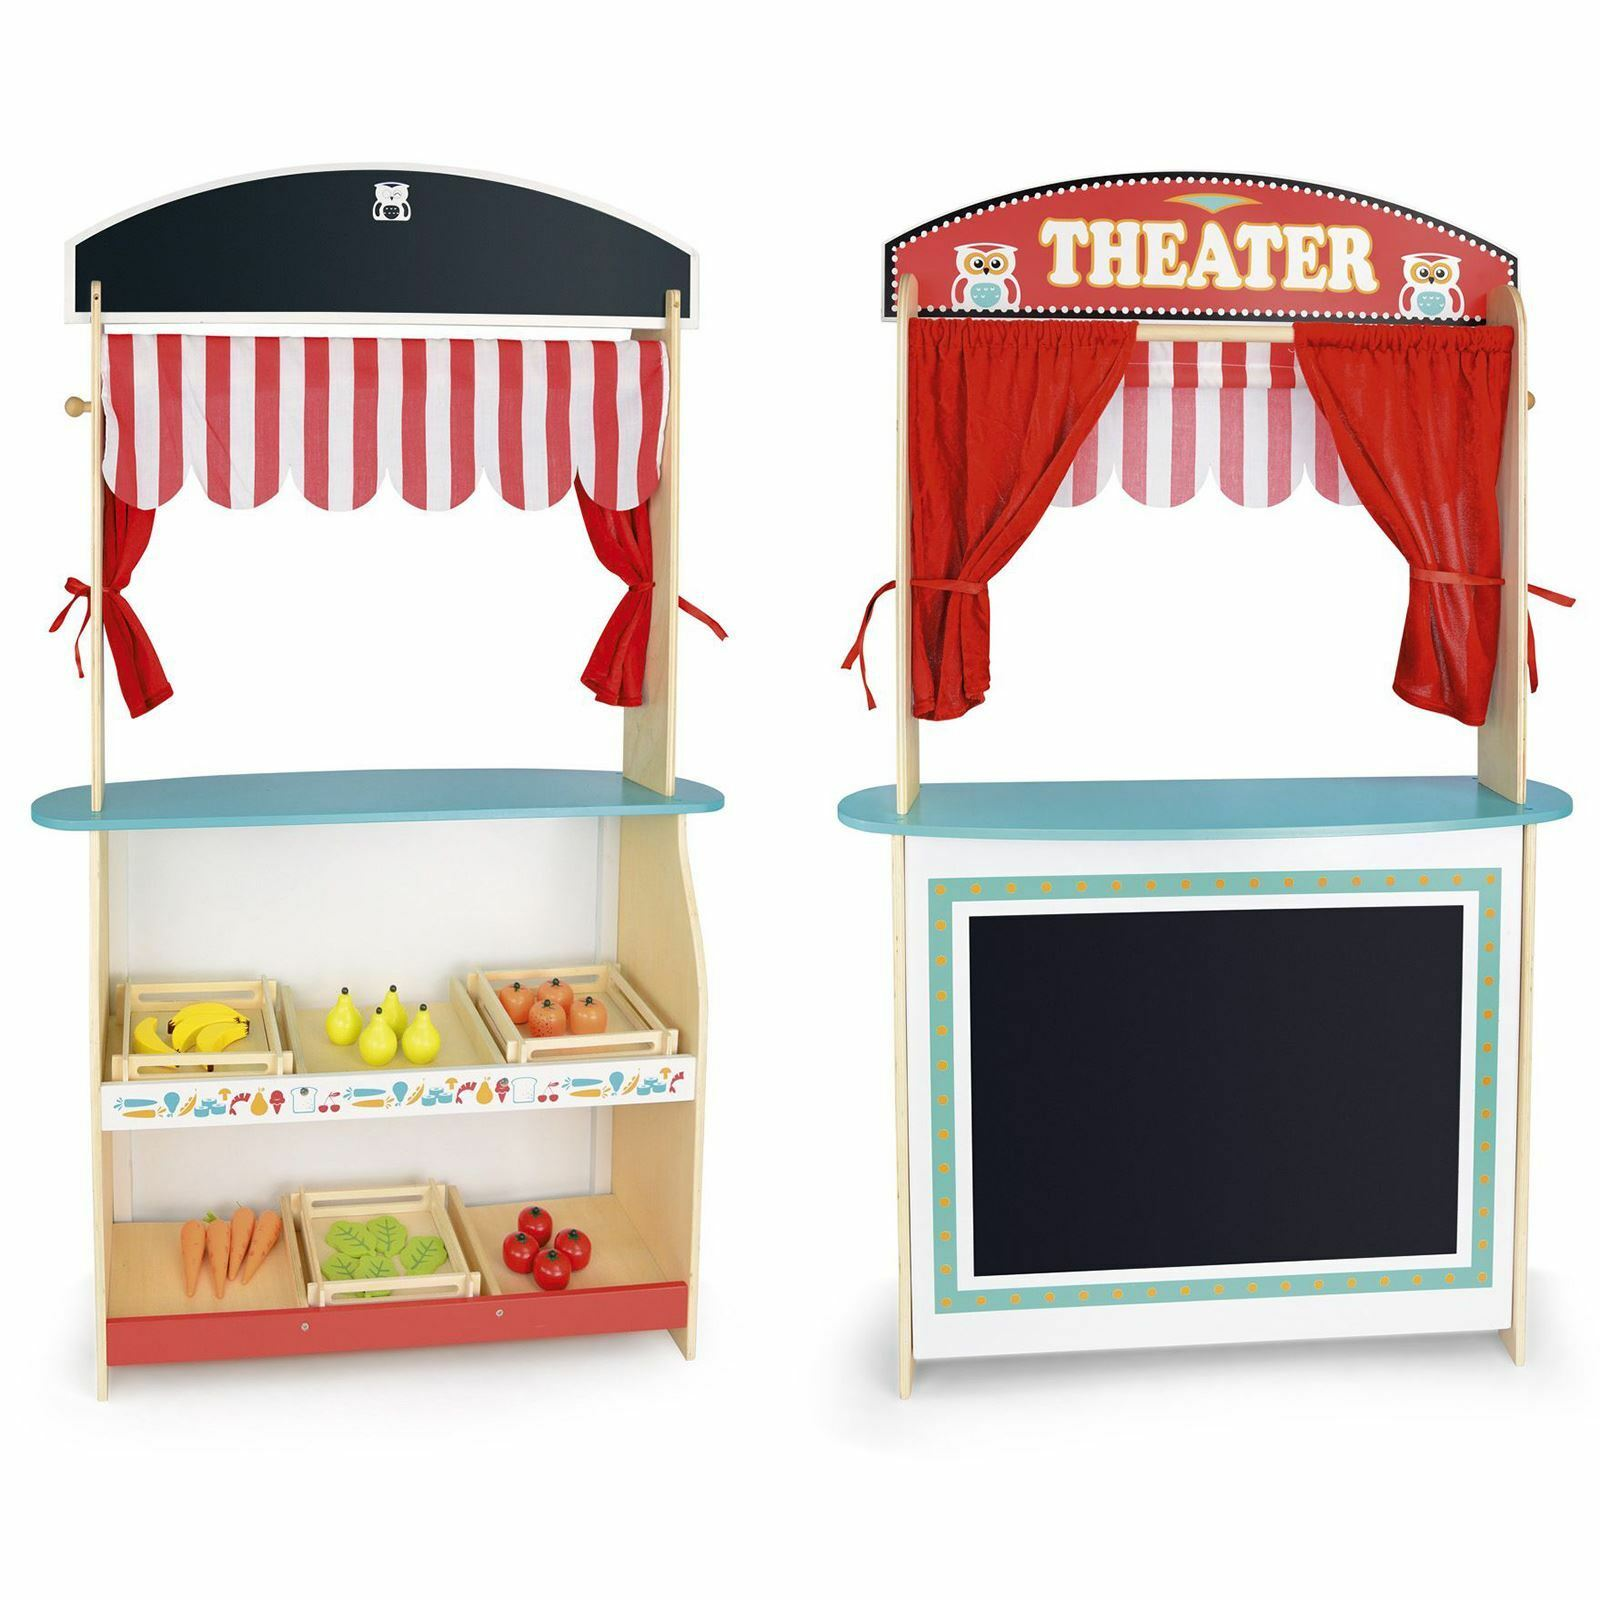 LEOMARK WOODEN SHOP & THEATRE 2 IN 1 PLAY SET KIDS FUN ACTIVITY FREE P+P